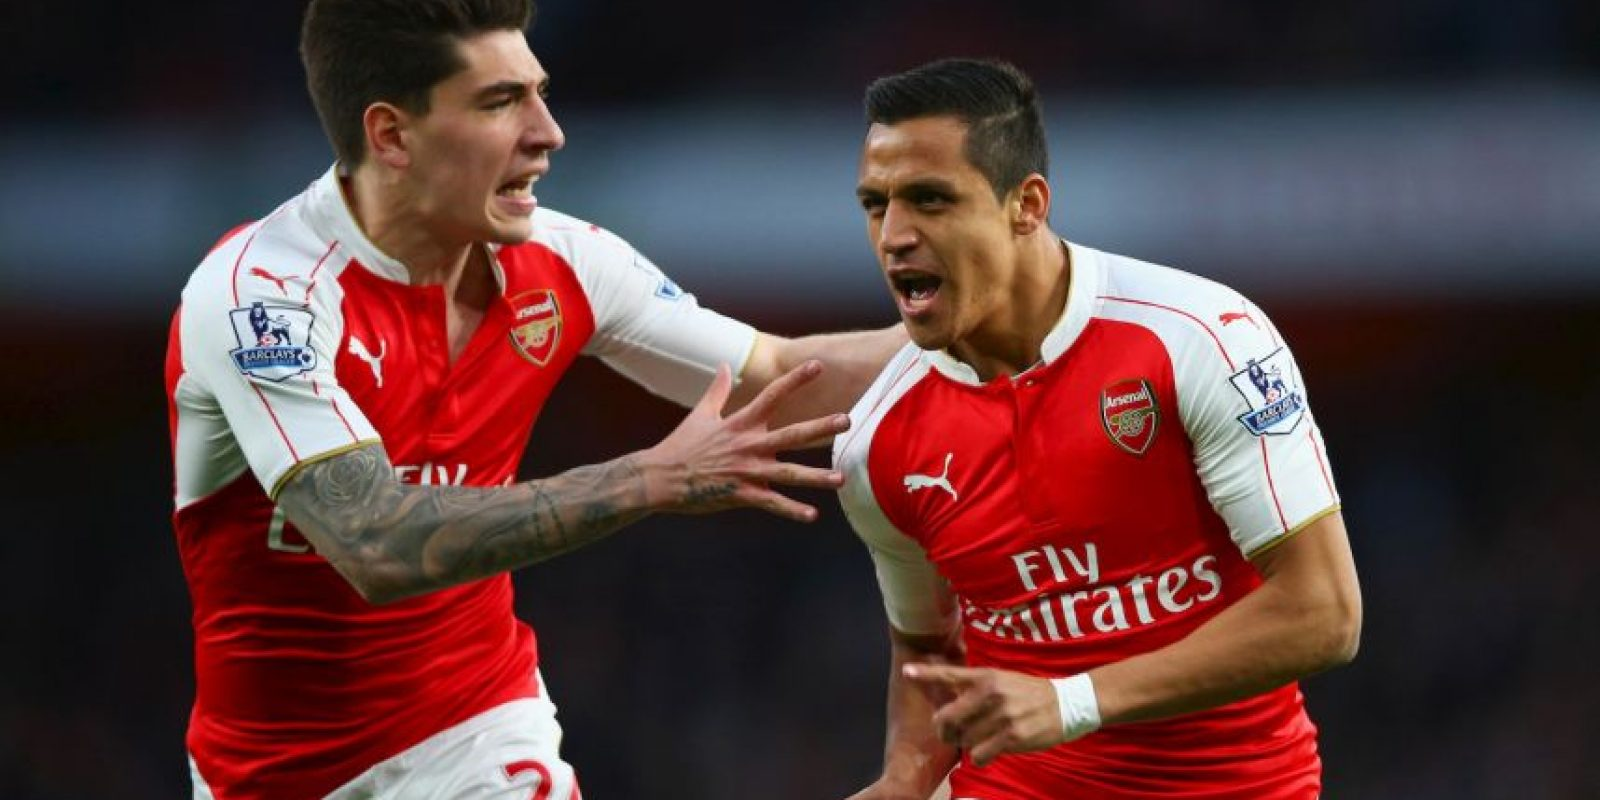 Arsenal completa el top 5 Foto: Getty Images